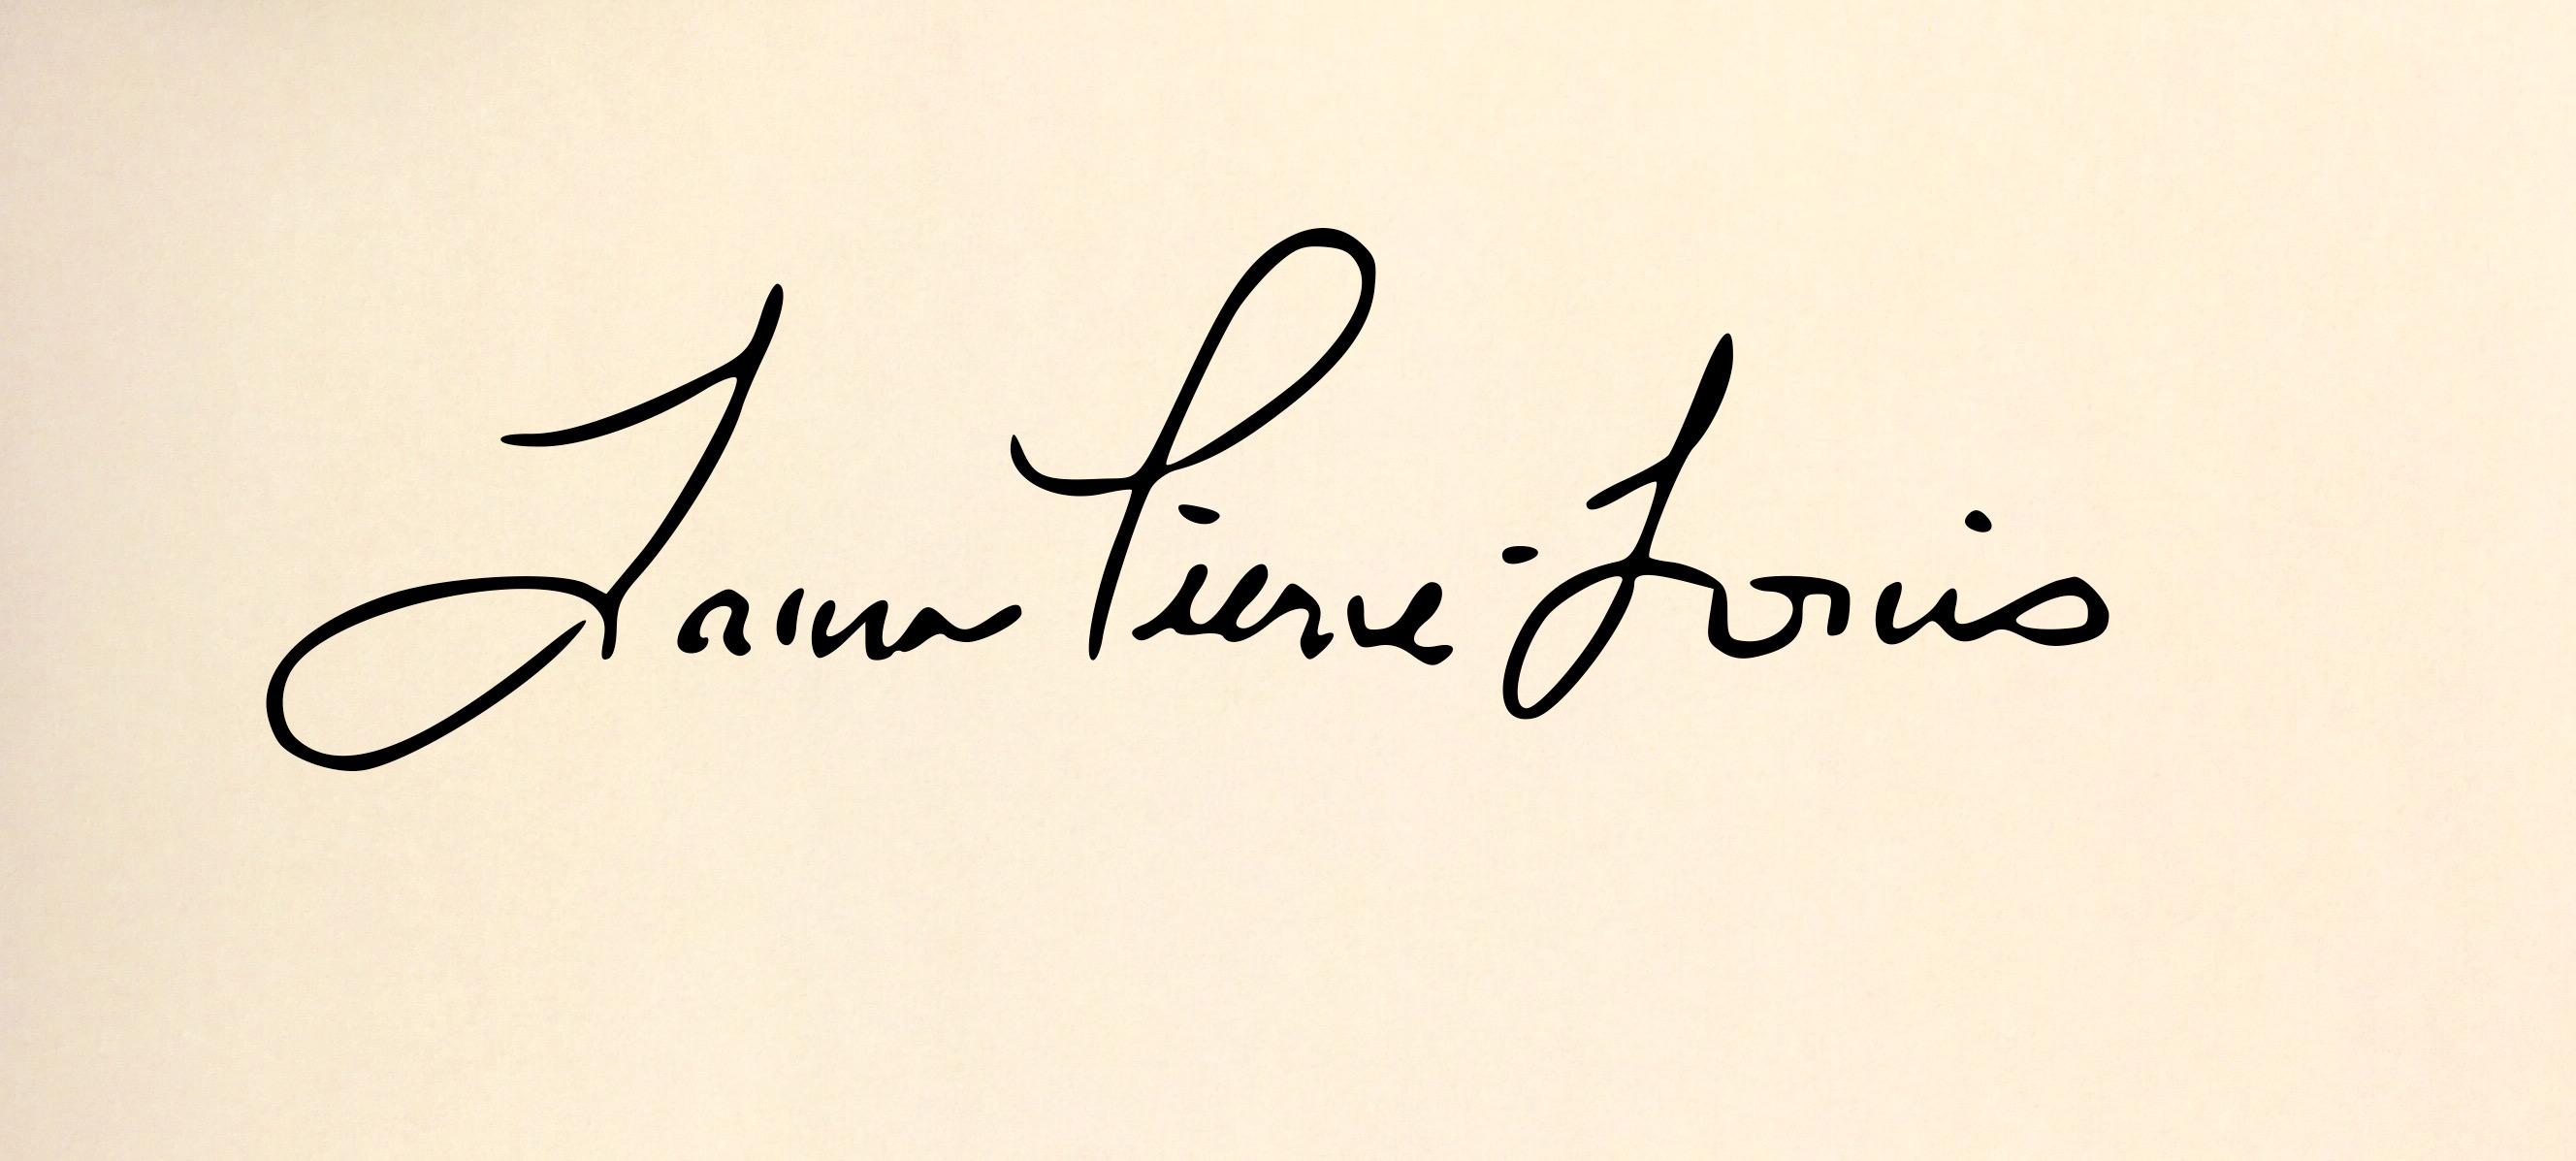 Laura Pierre-Louis's Signature